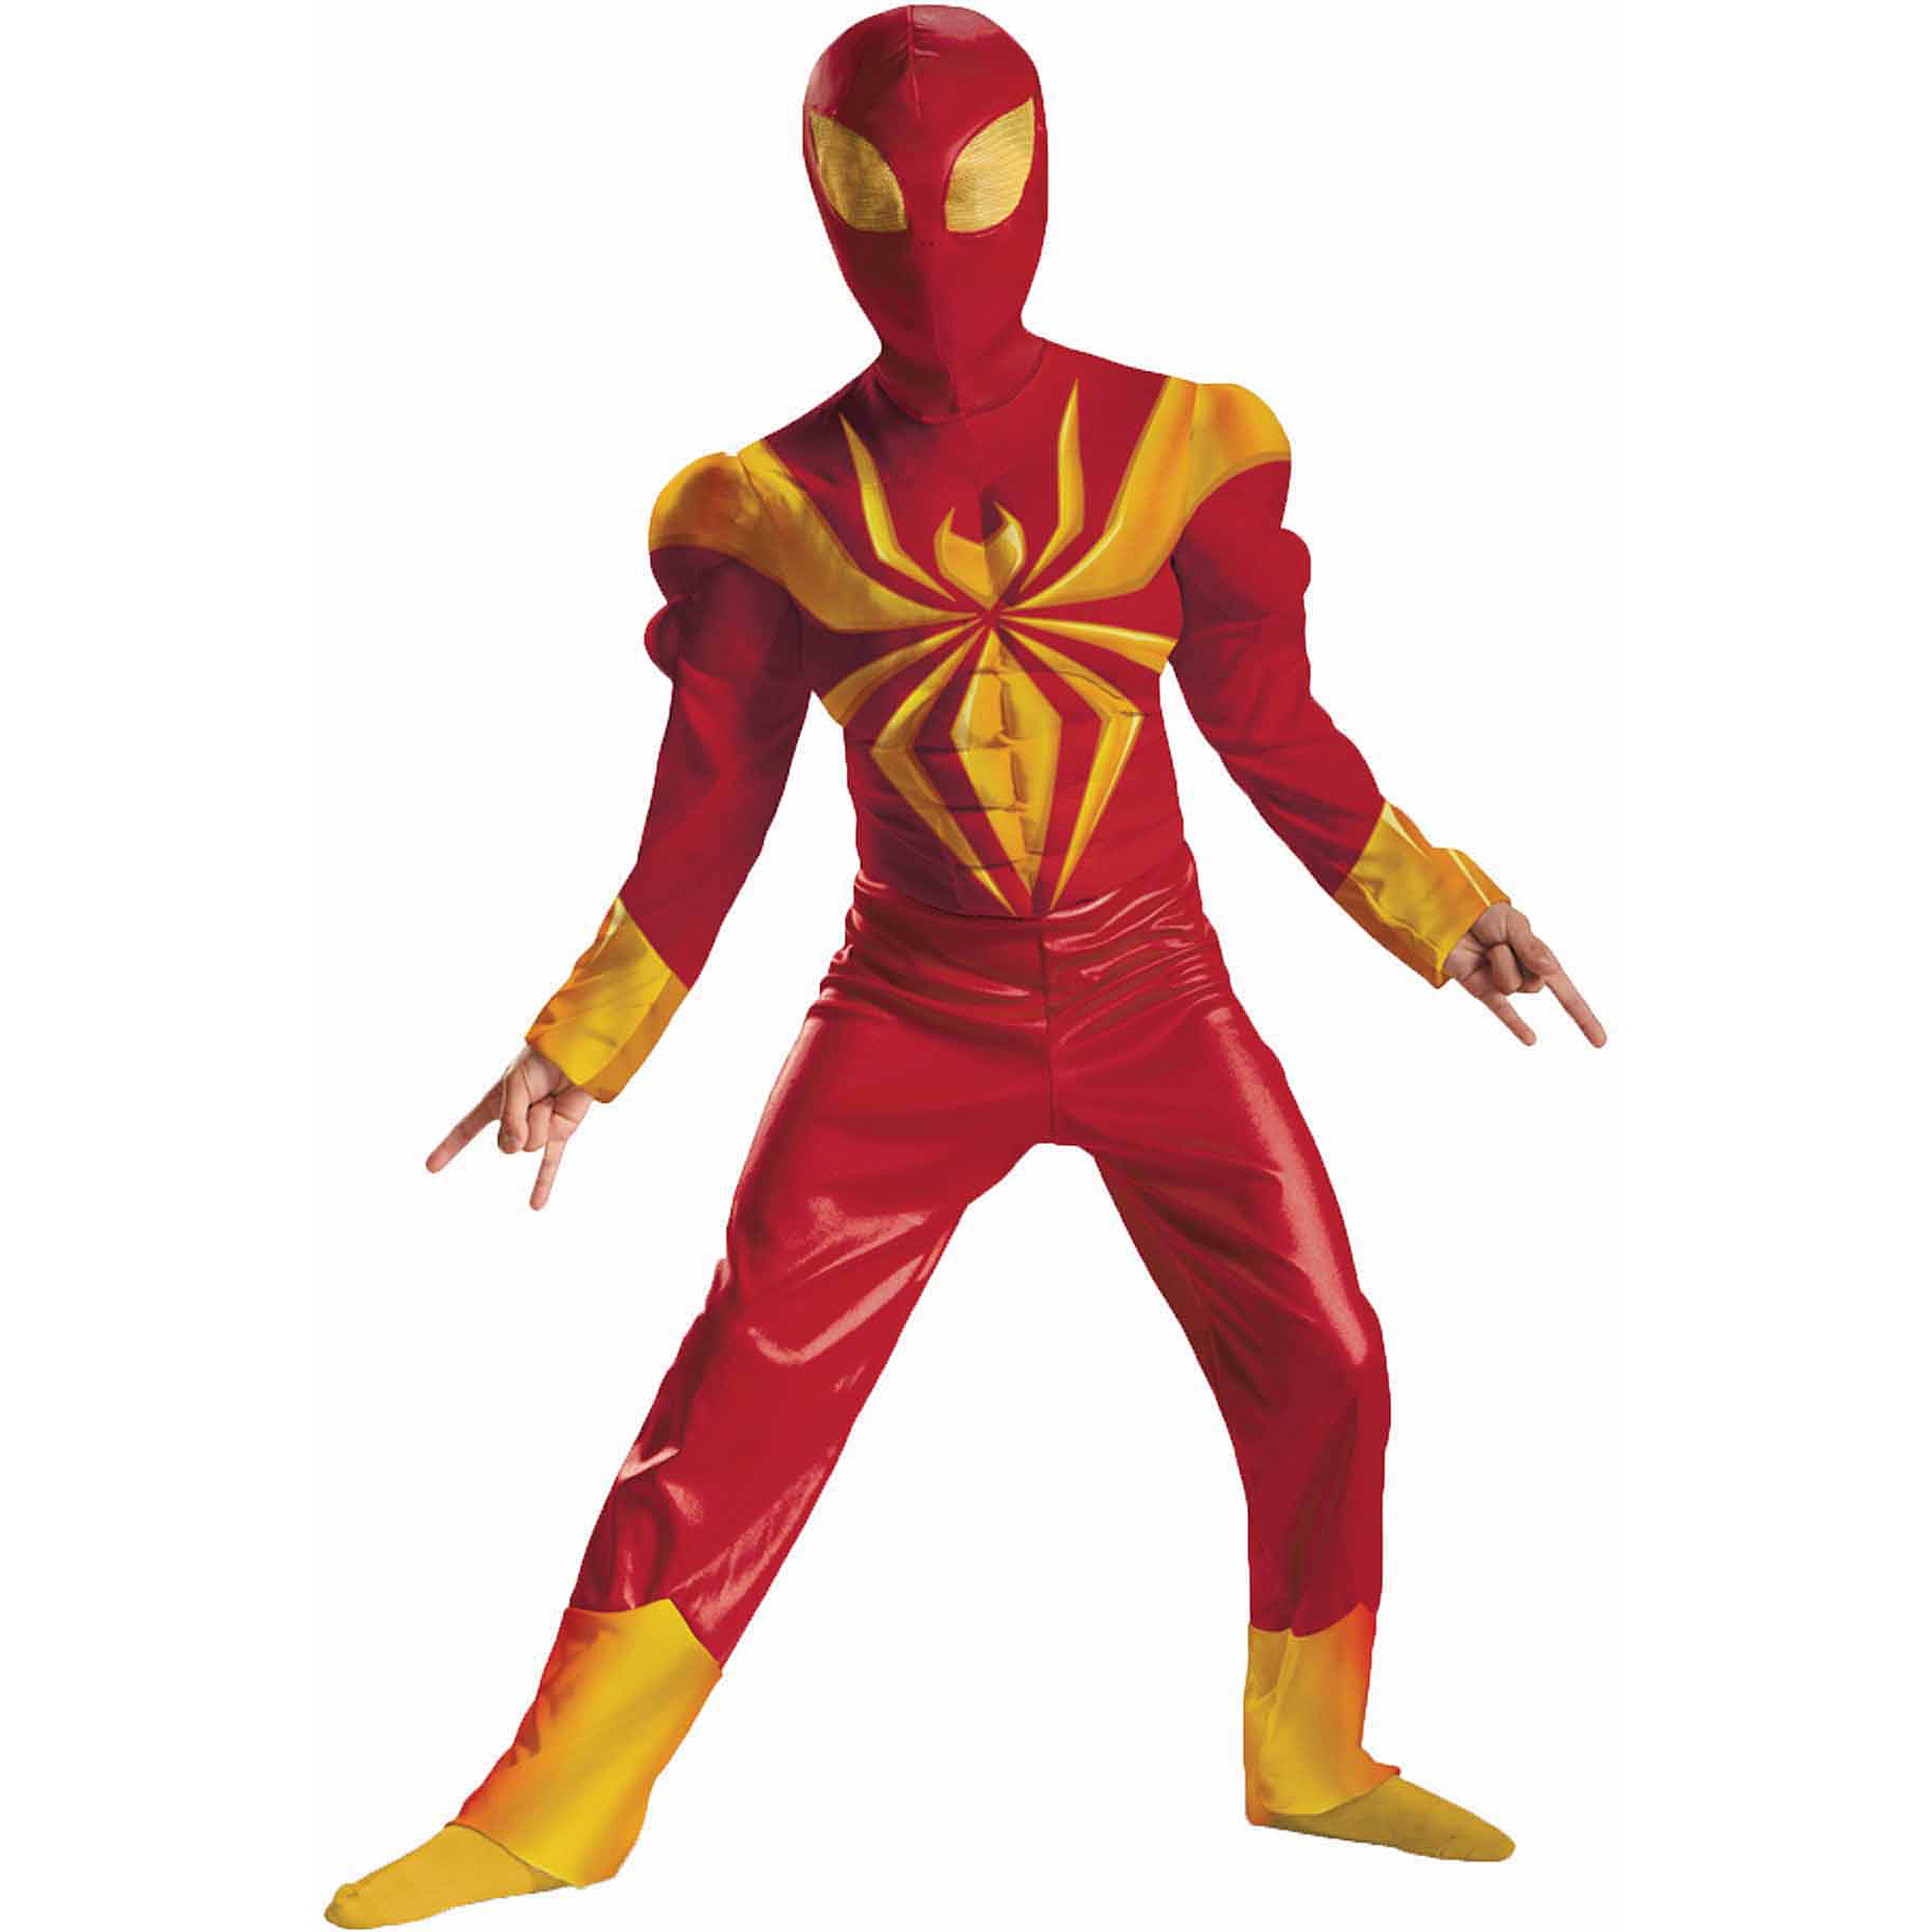 Disguise DI57722-S Ultimate Iron Spider-Man Man Classic Muscle Costume Size Medium